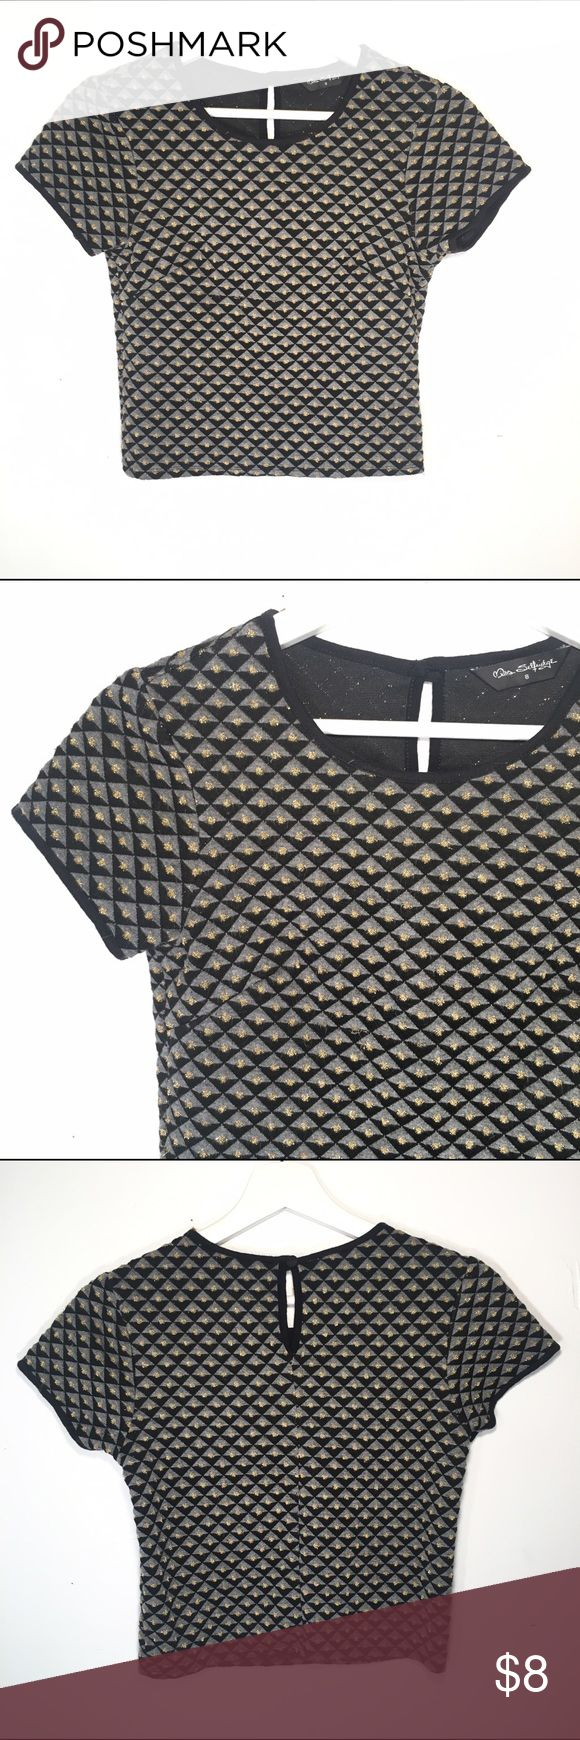 MISS SELFRIDGE Crop Top Short sleeve  Jewel neckline  Button closure at neckline  Black, grey and gold design  51% Viscose 41% Polyester 1% Metallised fibers   UK brand Euro size 8  Condition: no stains or tears   ☑️No Pets  ☑️Non-Smoking home  ☑️Every item steamed throughly before shipped!  💌 Ships from Santa Monica, CA   🗝Follow me on Instagram! @koukil1908 ask to have a video of the item ✌️ Miss Selfridge Tops Crop Tops